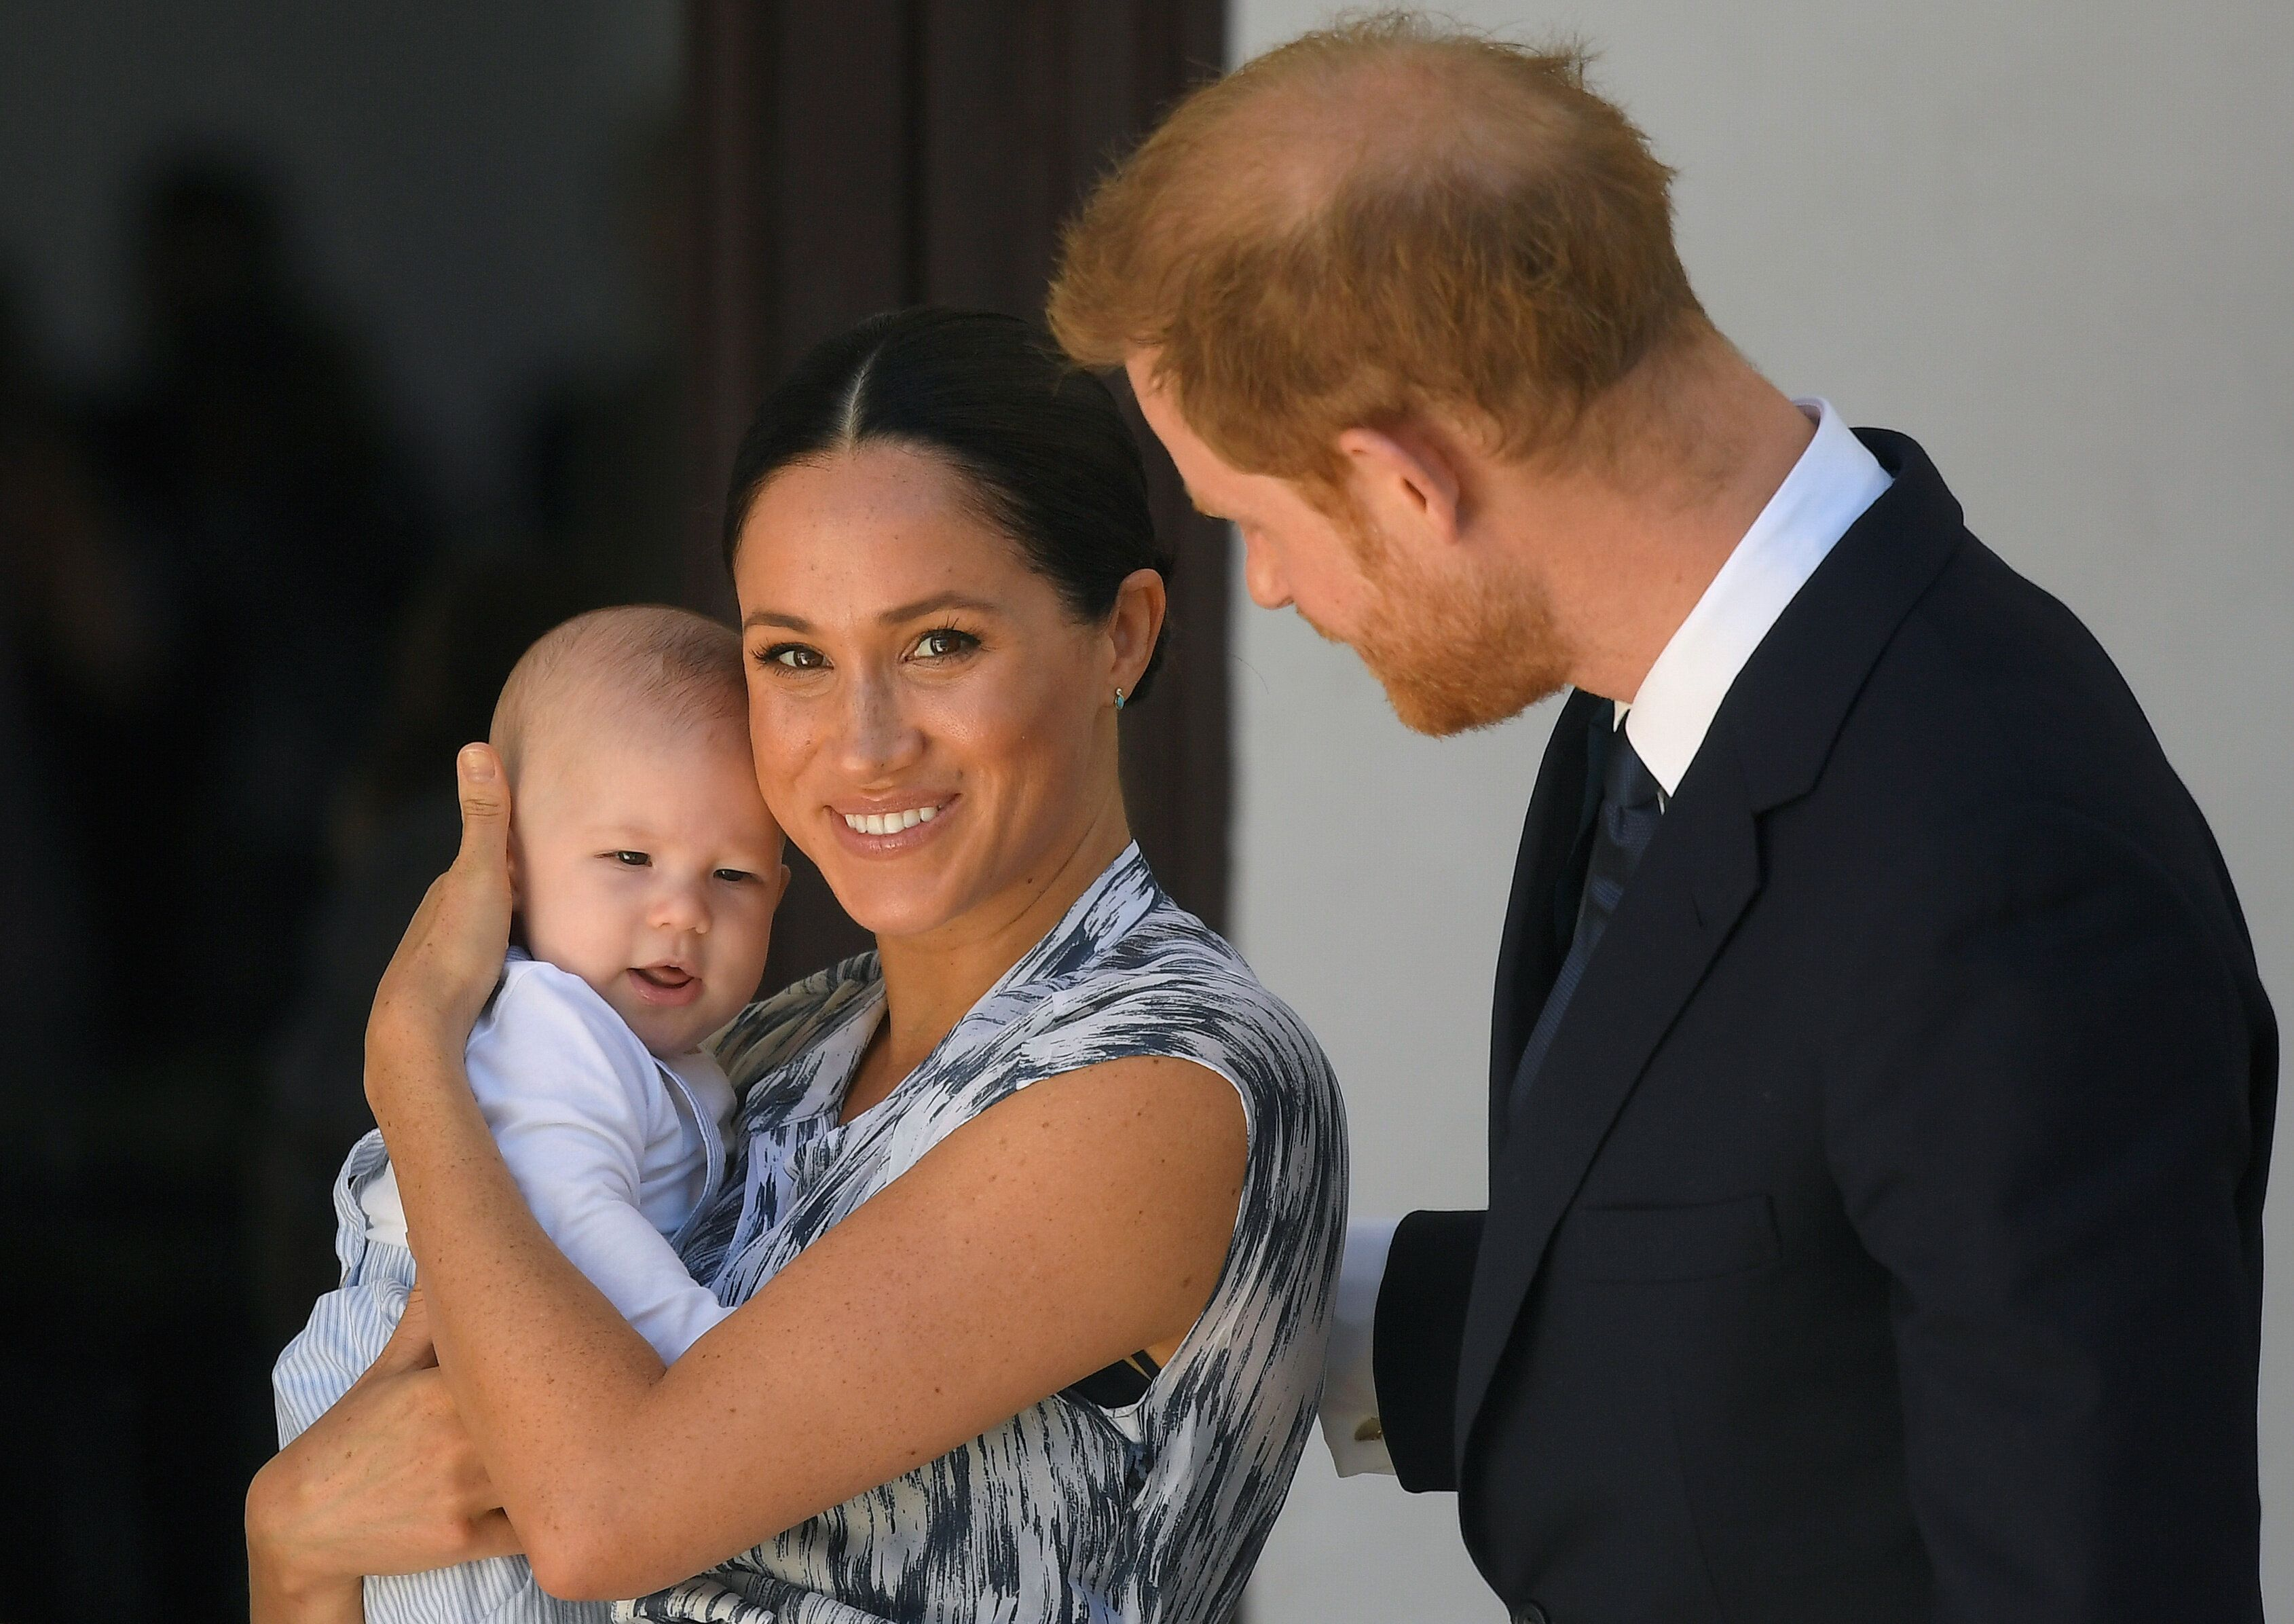 The Duke and Duchess of Sussex and their baby son Archie Mountbatten-Windsor at a meeting with Archbishop Desmond Tutu during